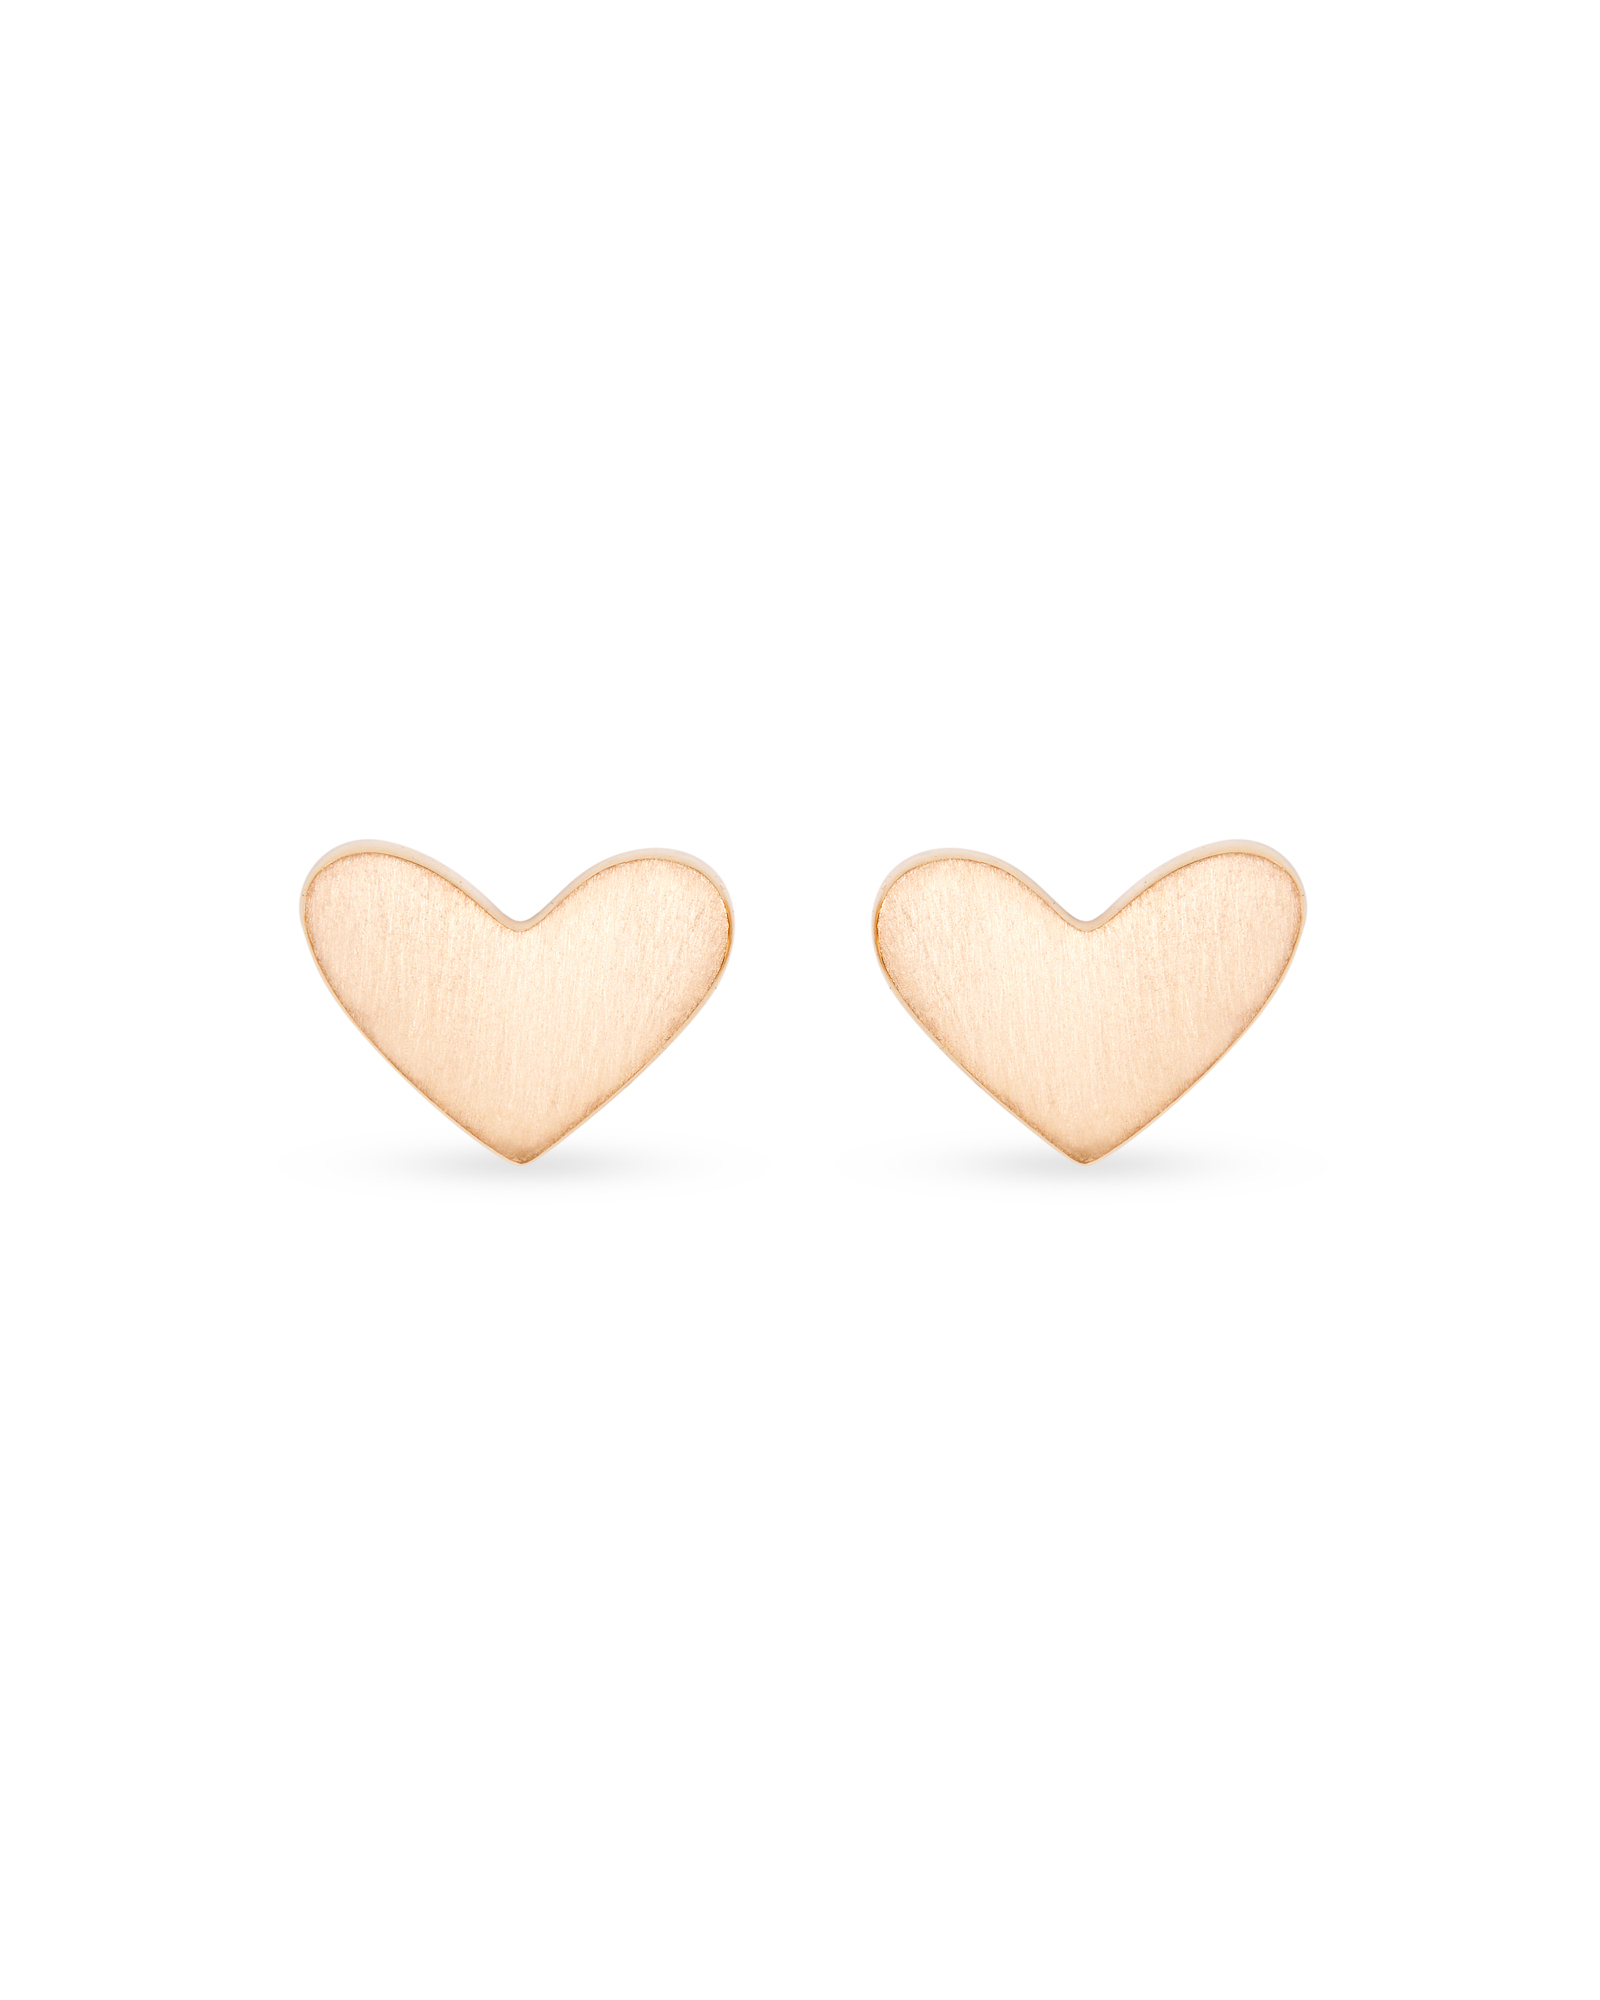 Ari Heart Stud Earrings In 18k Rose Gold Vermeil